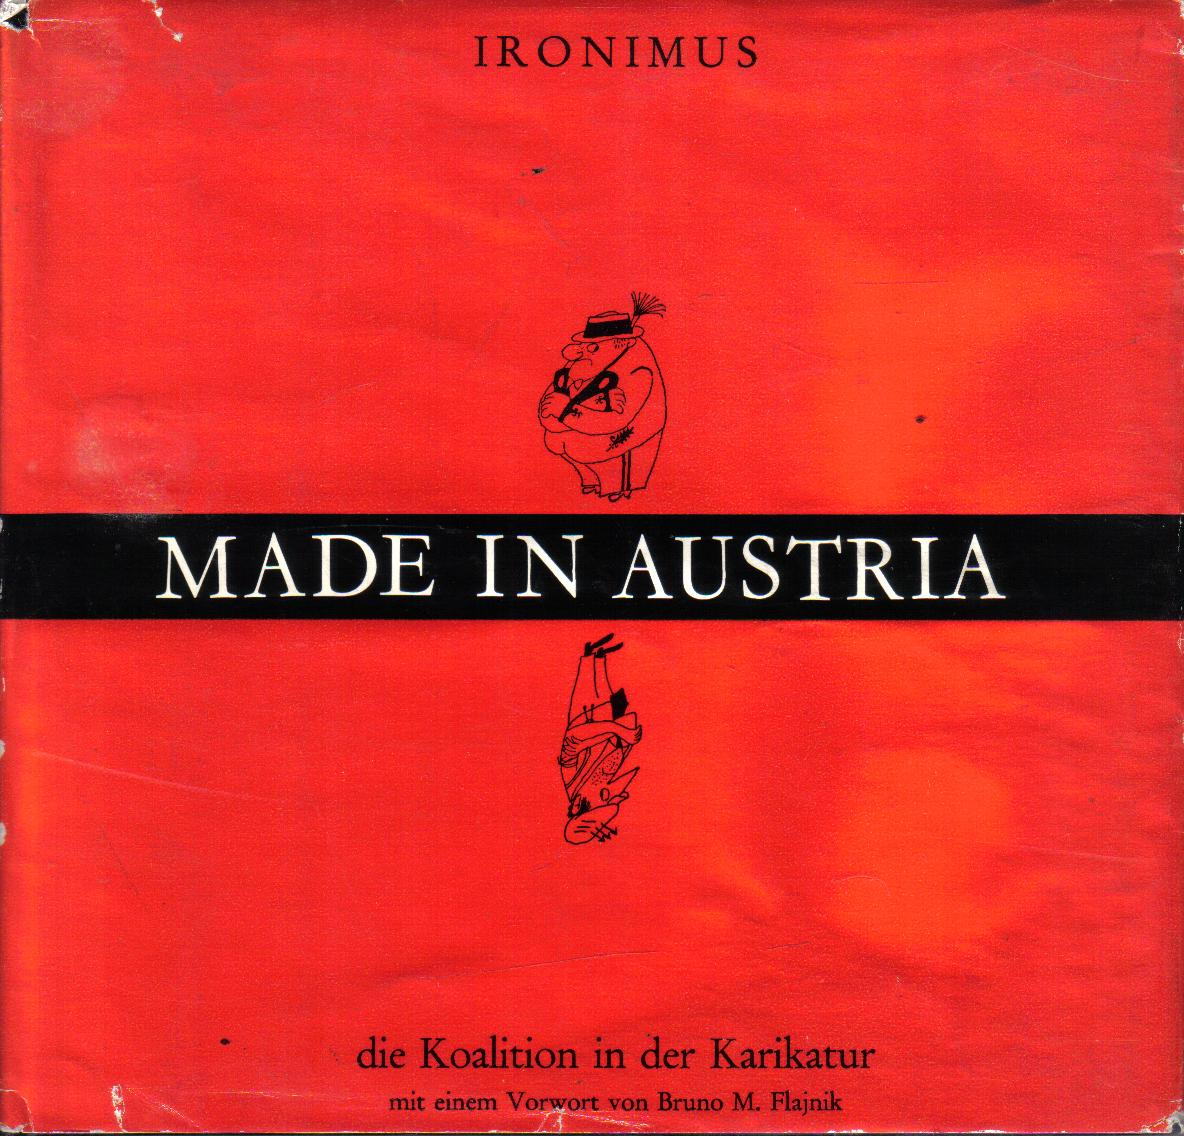 Ironimus made in Austria